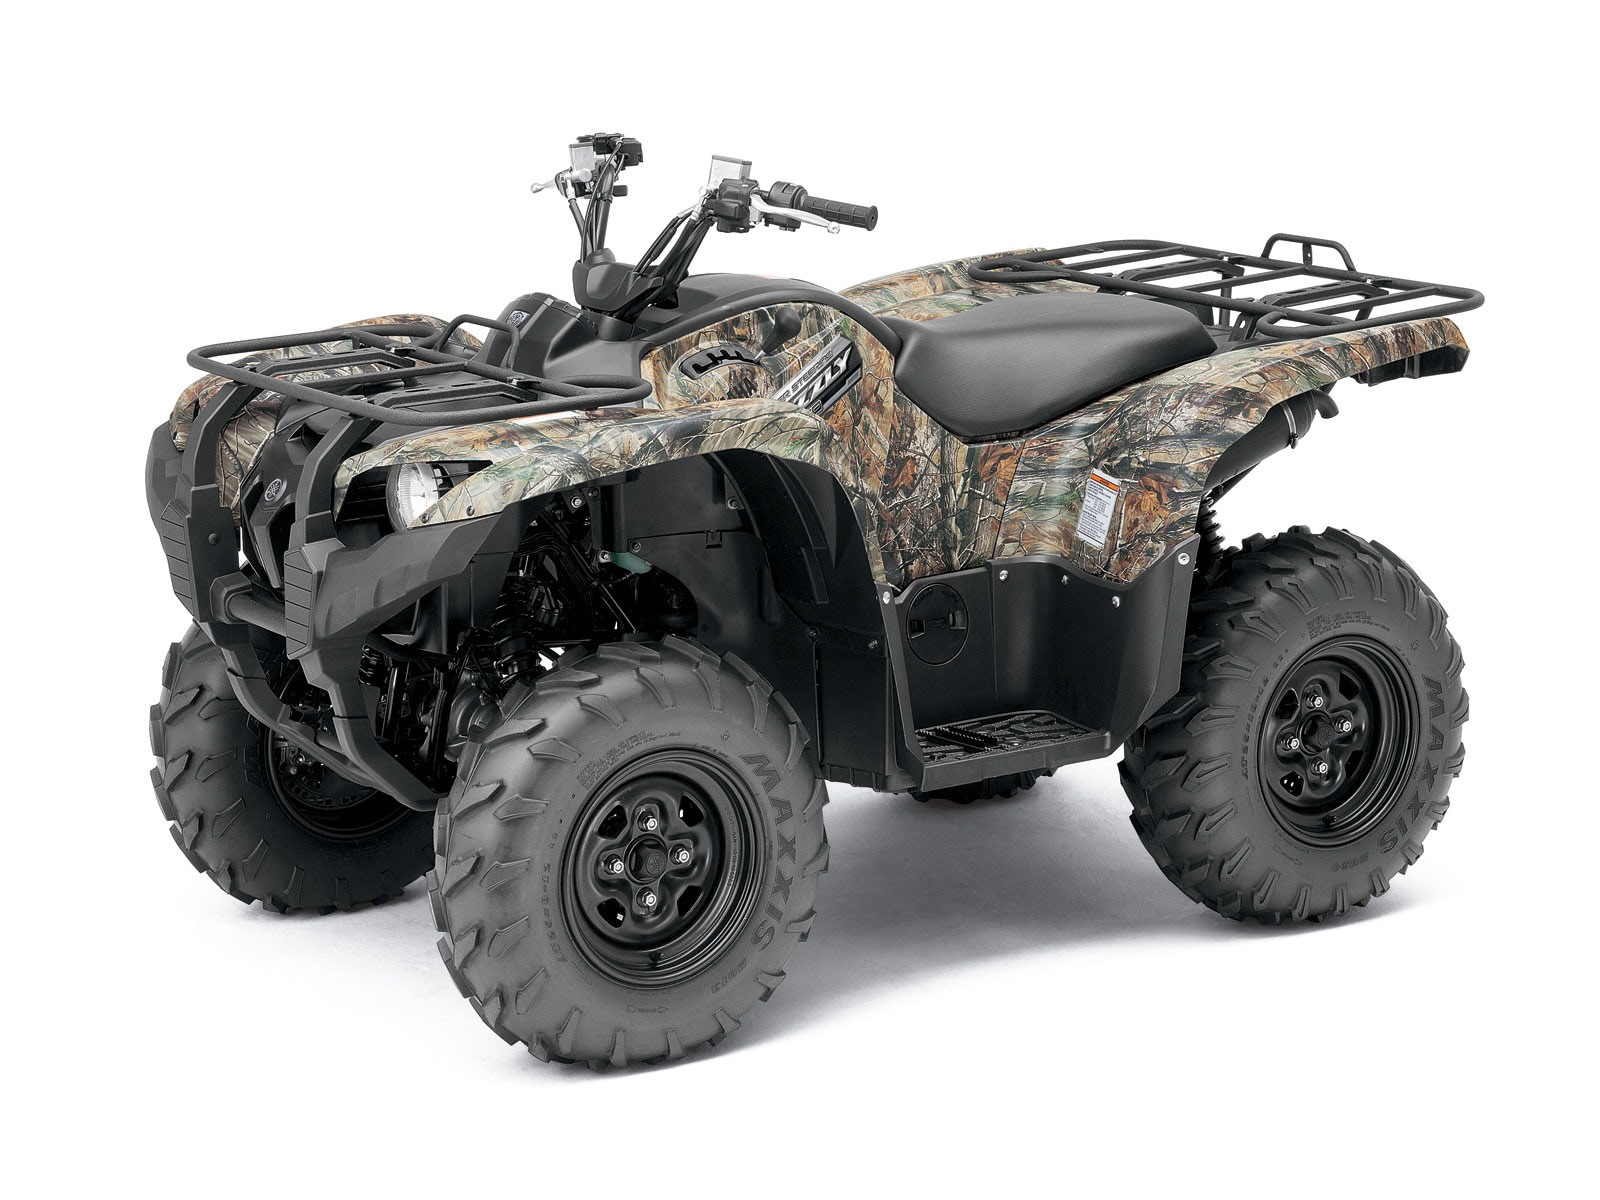 2012 yamaha grizzly 550 fi auto 4x4 eps atv pictures for Yamaha clp 550 specifications